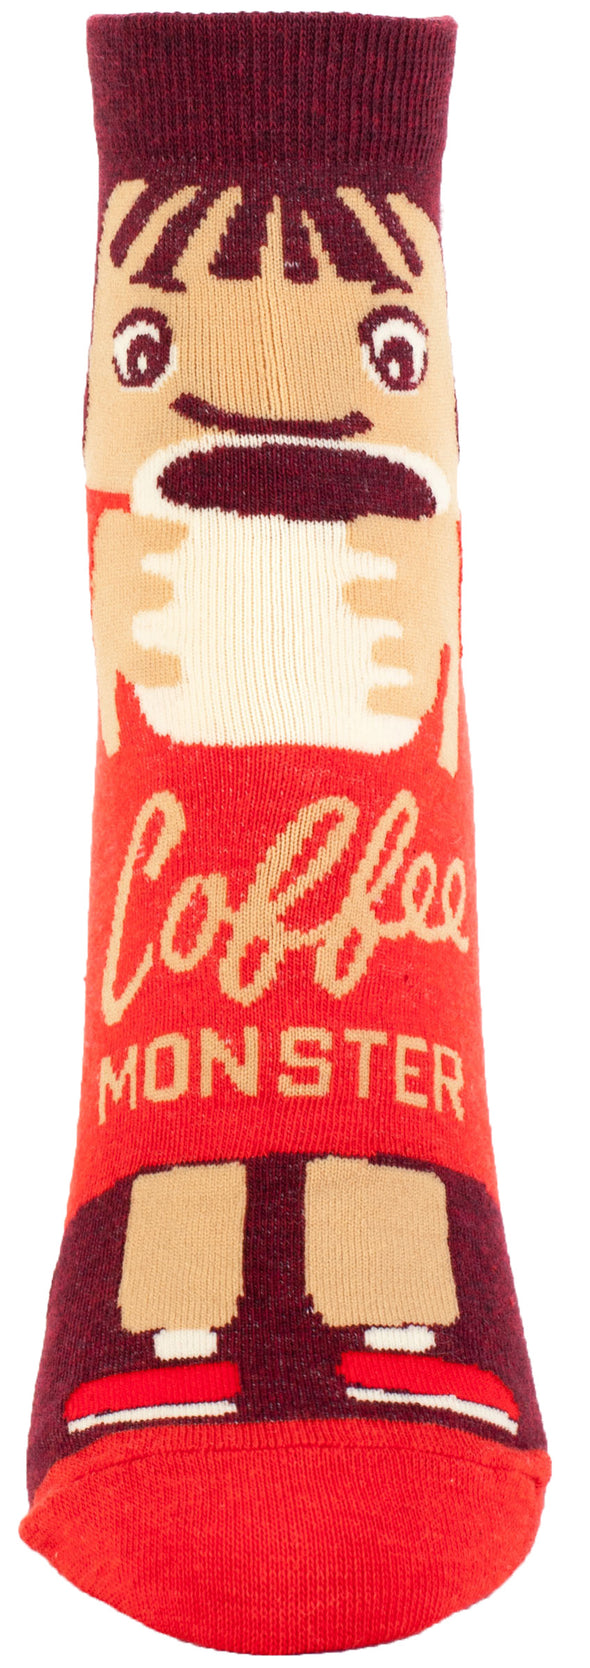 Blue Q Womens SW607 Cotton Ankle Fashion Socks, Coffee Monster, One Size